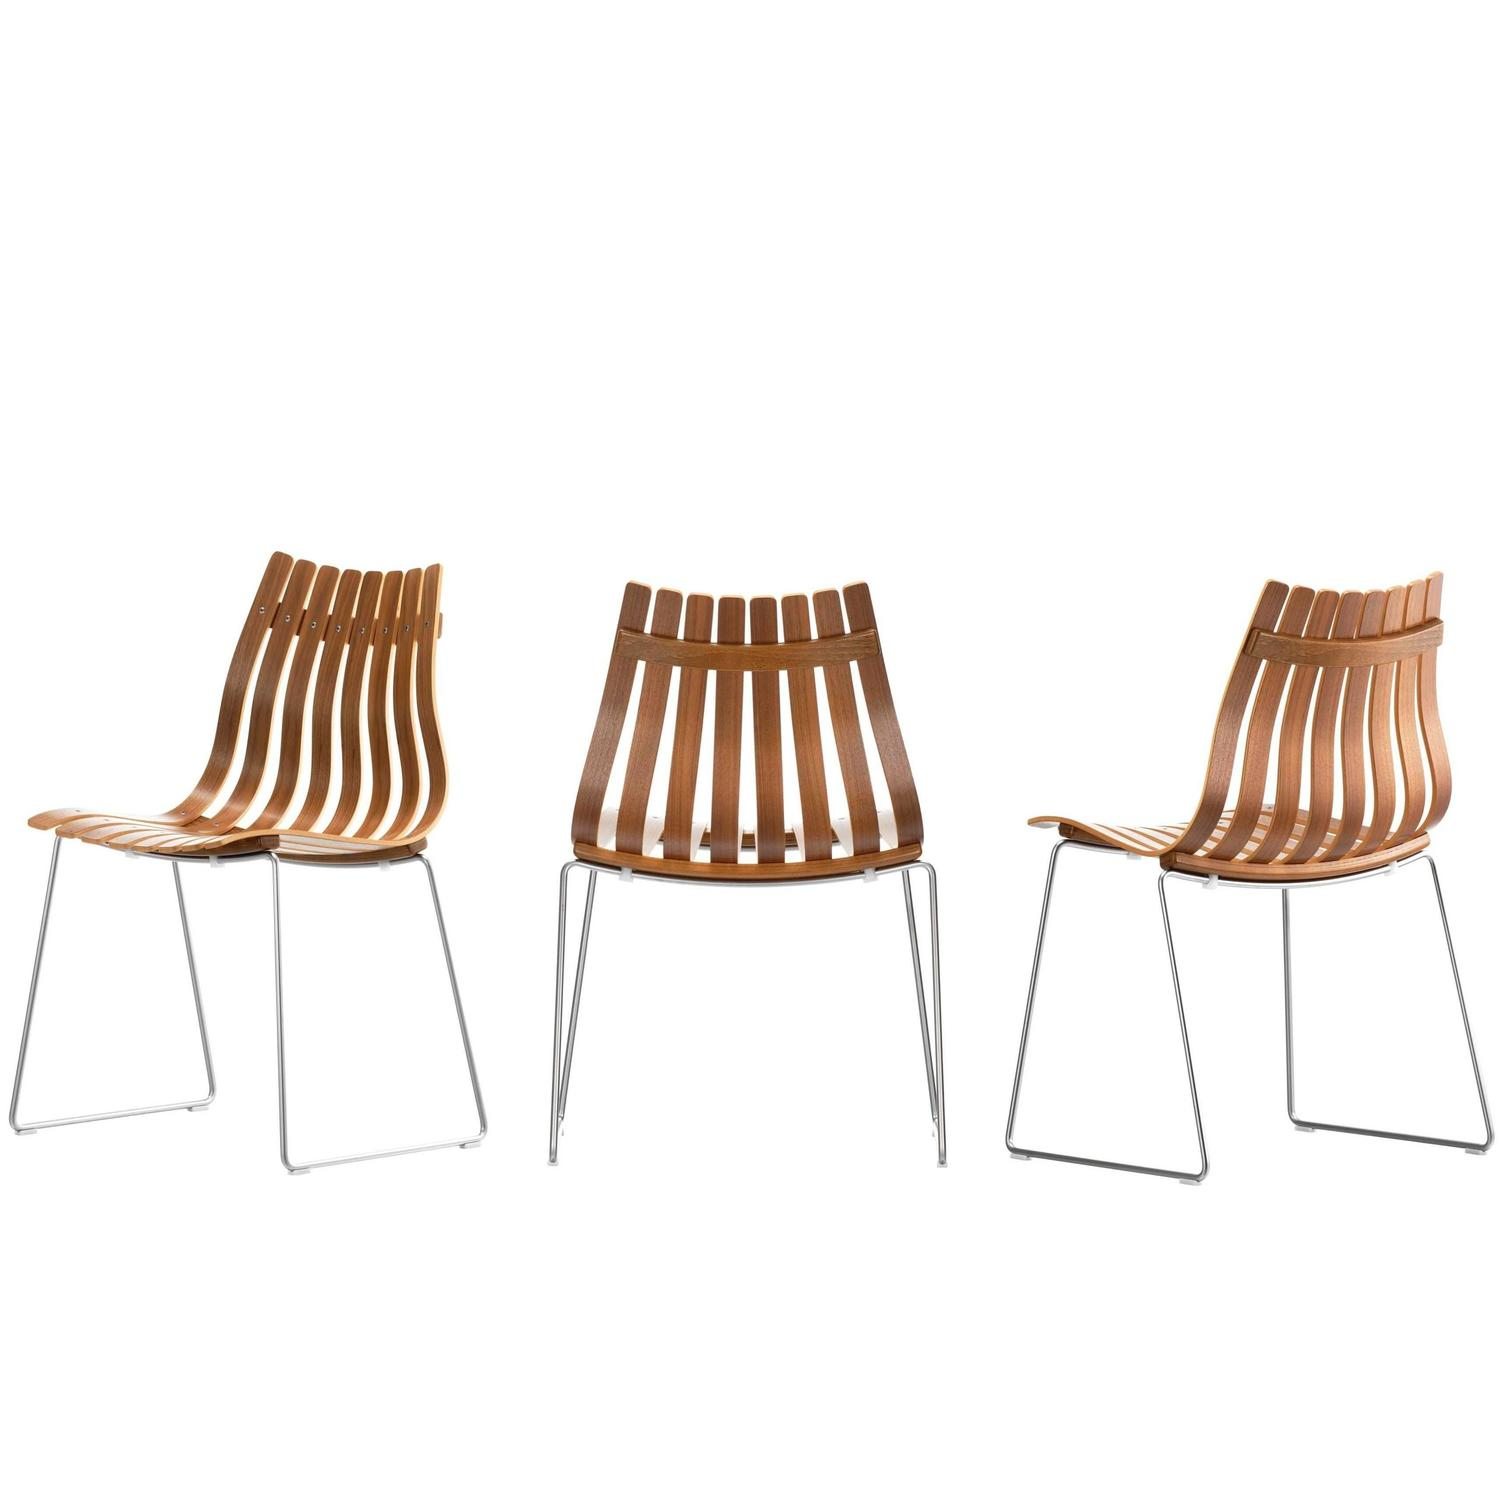 Fjord Fiesta Scandia Junior Dining or Side Chair For Sale at 1stdibs